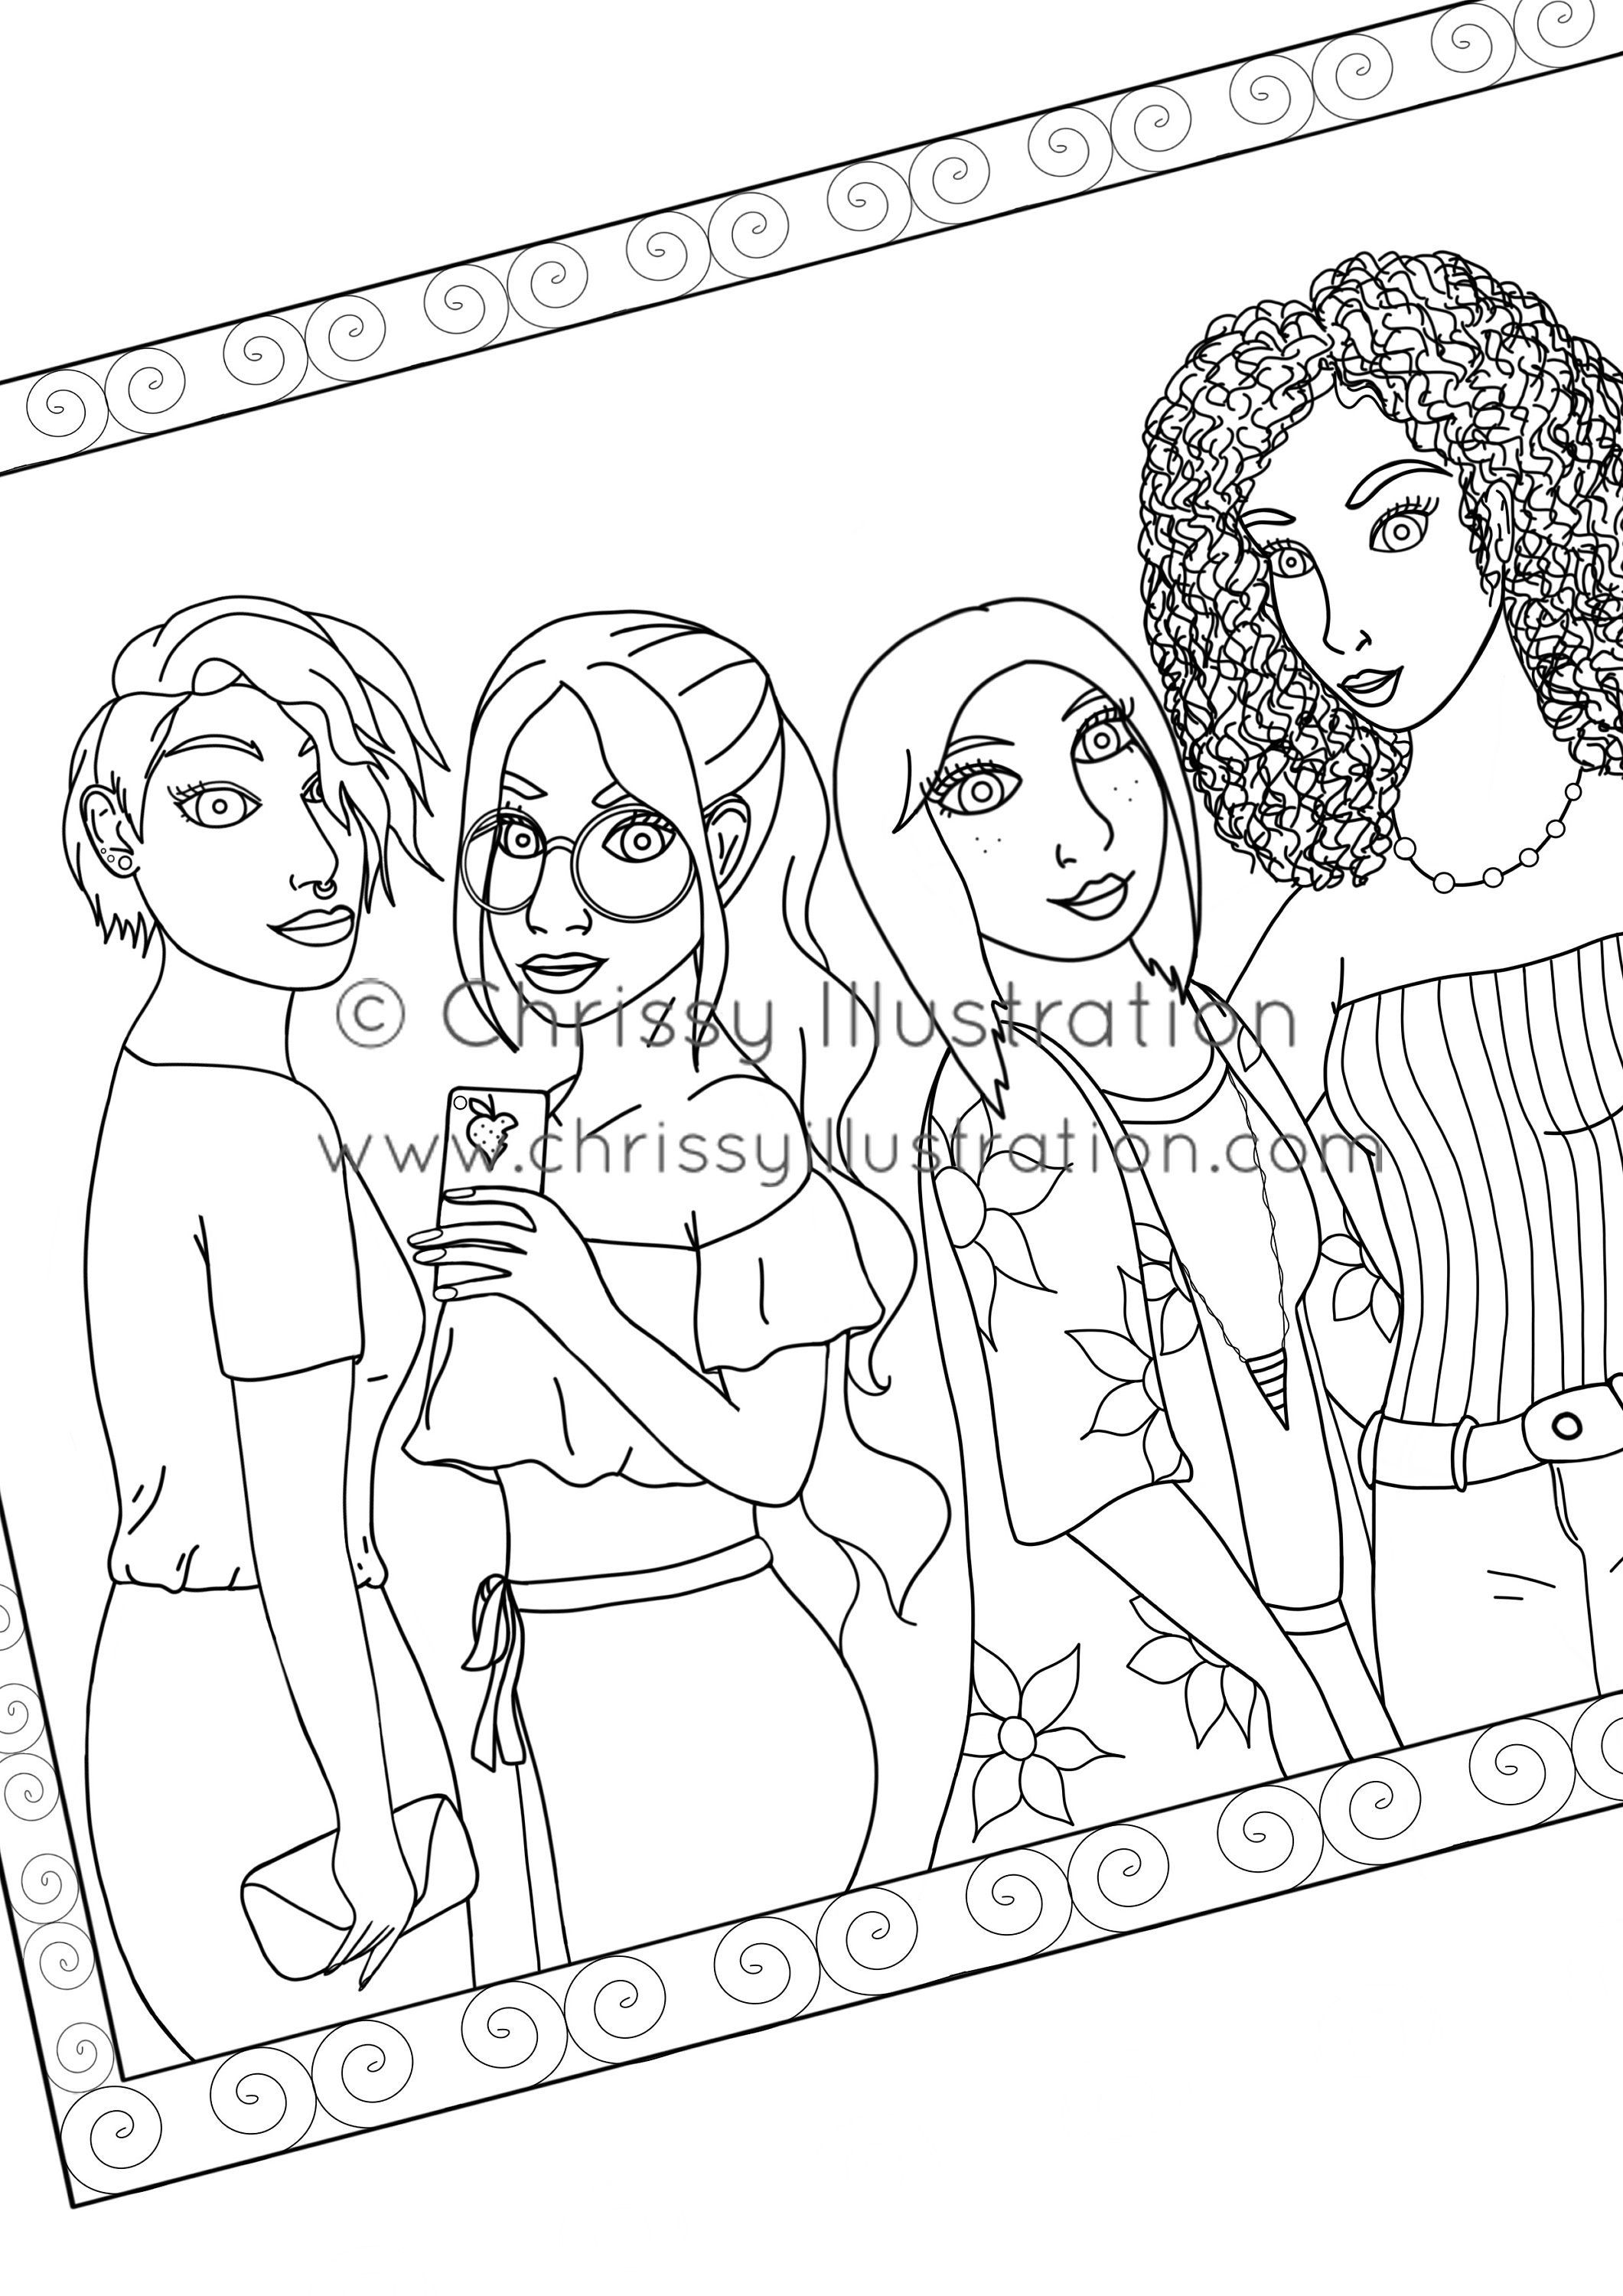 Coloring Page Friends In Frame Cute Coloring Pages Coloring Pages Coloring Supplies